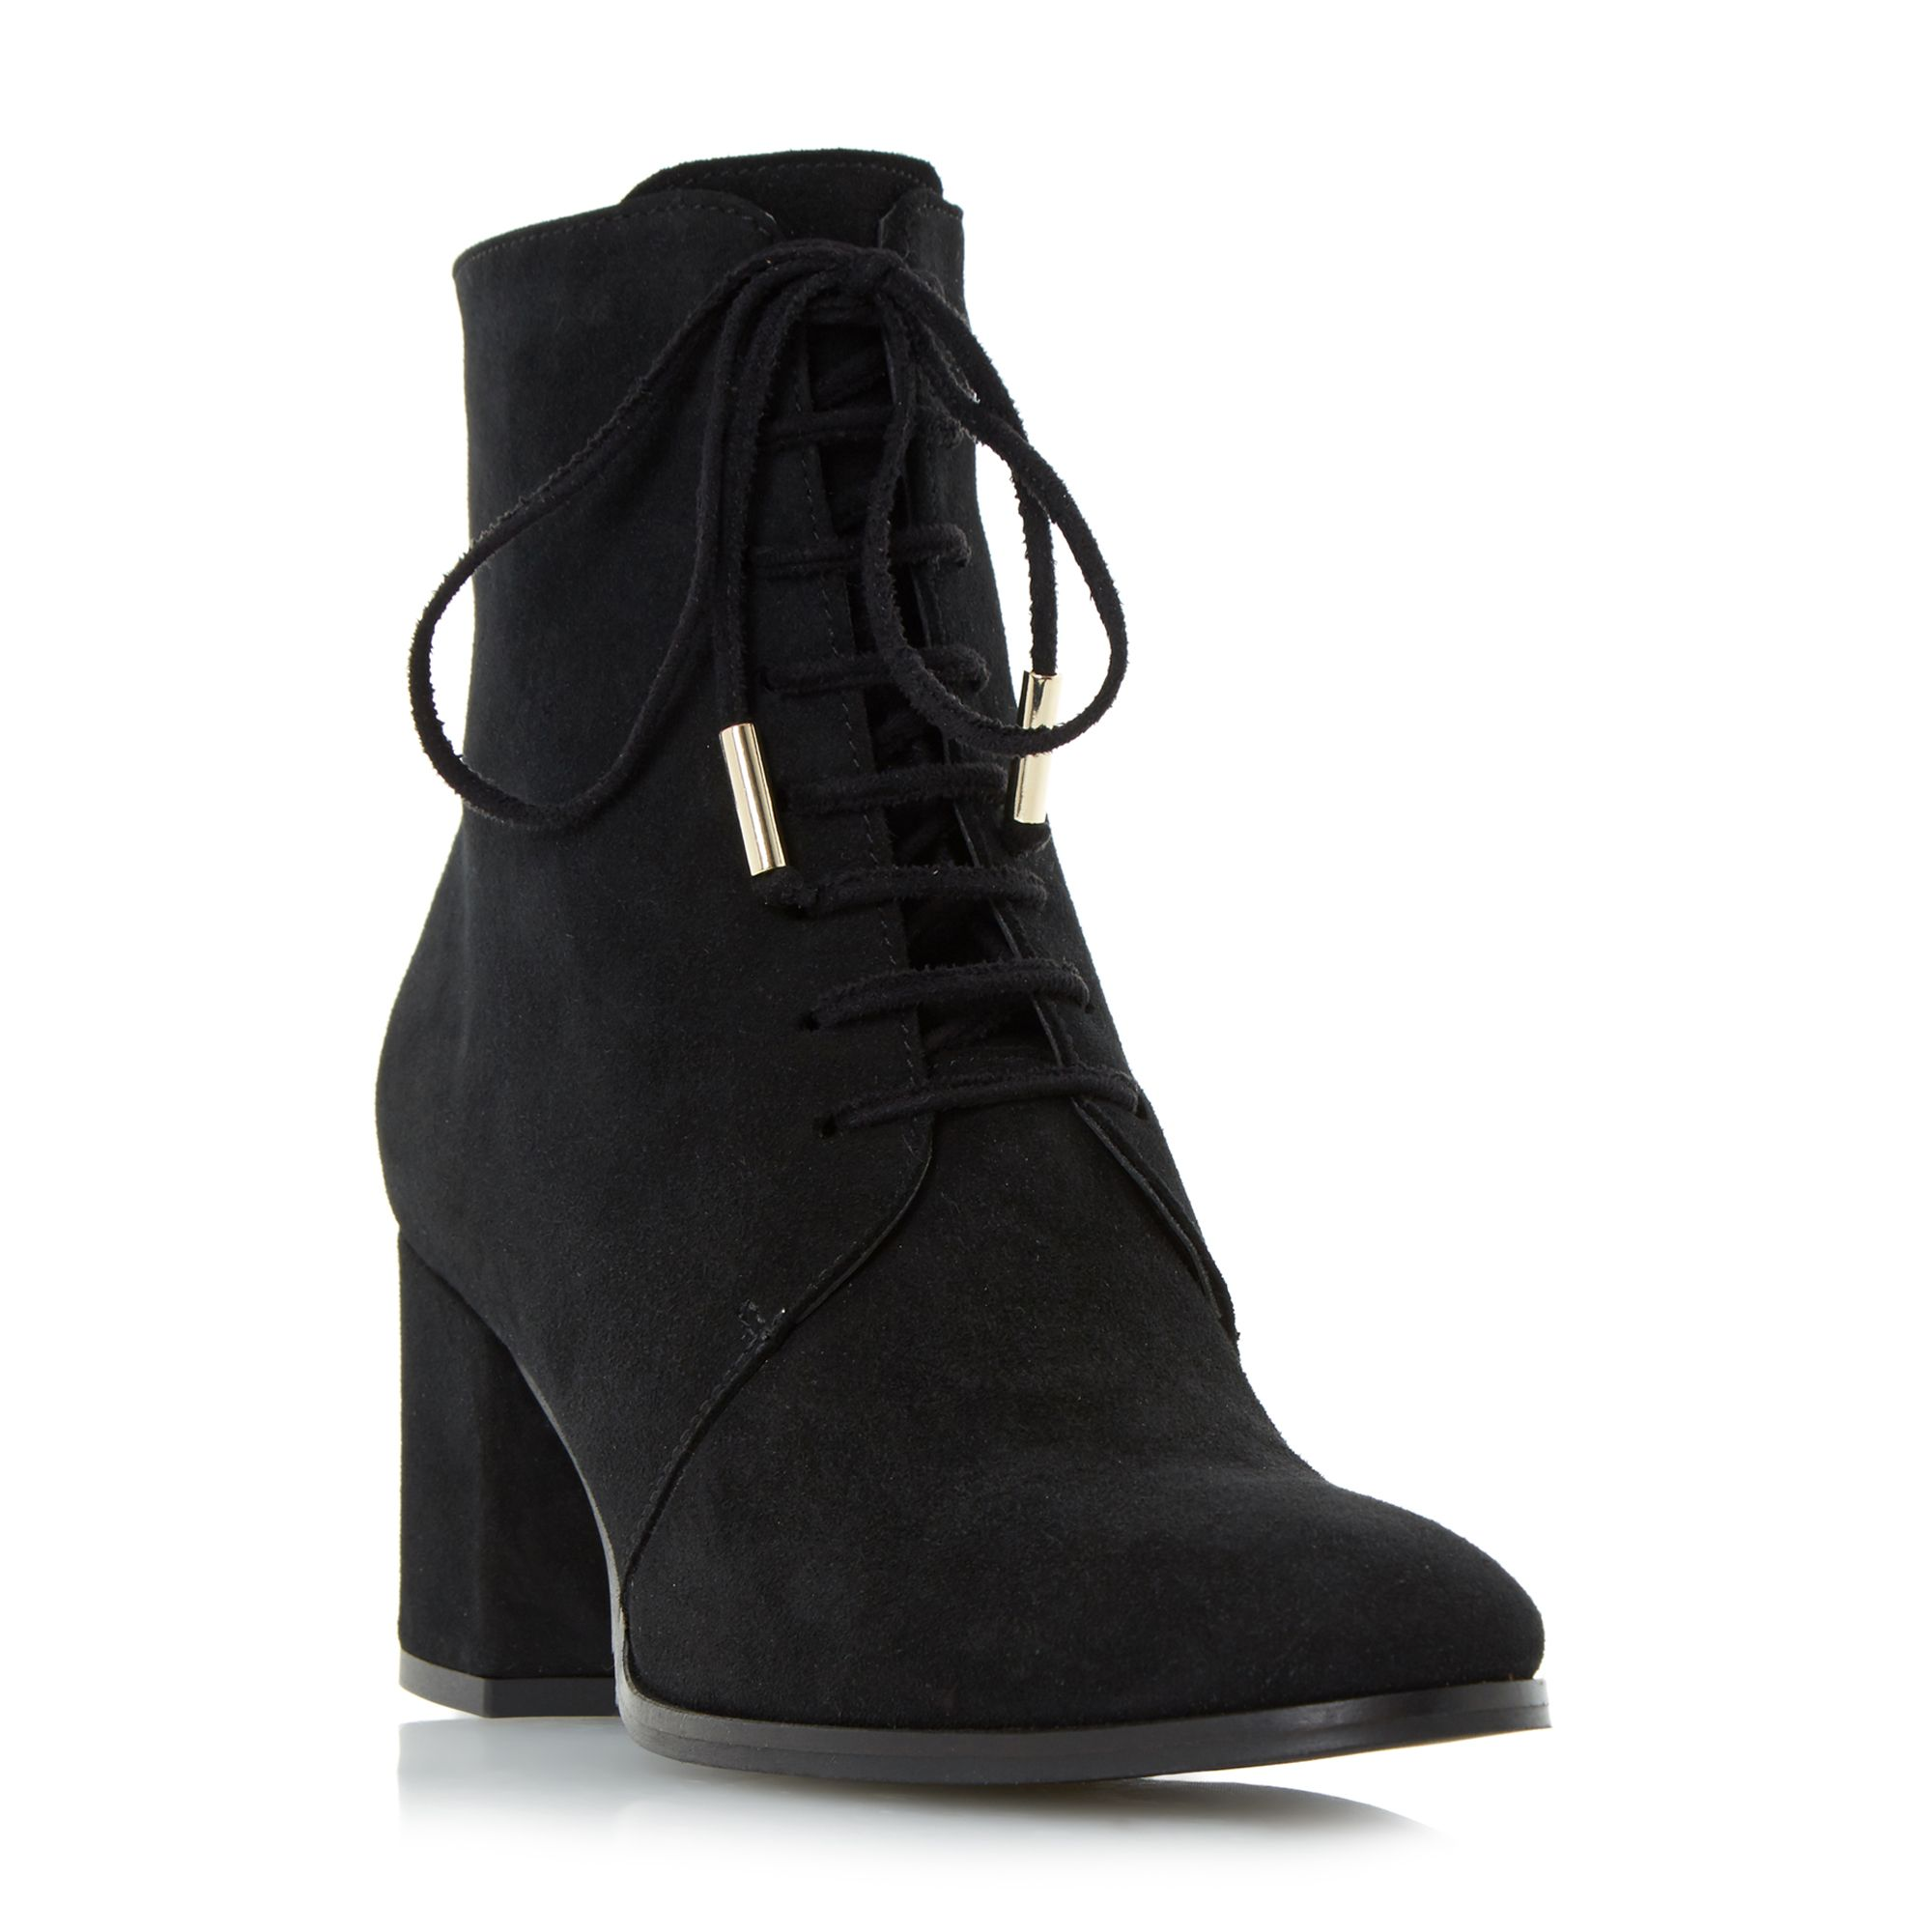 Dune Olita lace up block heel ankle boots Black